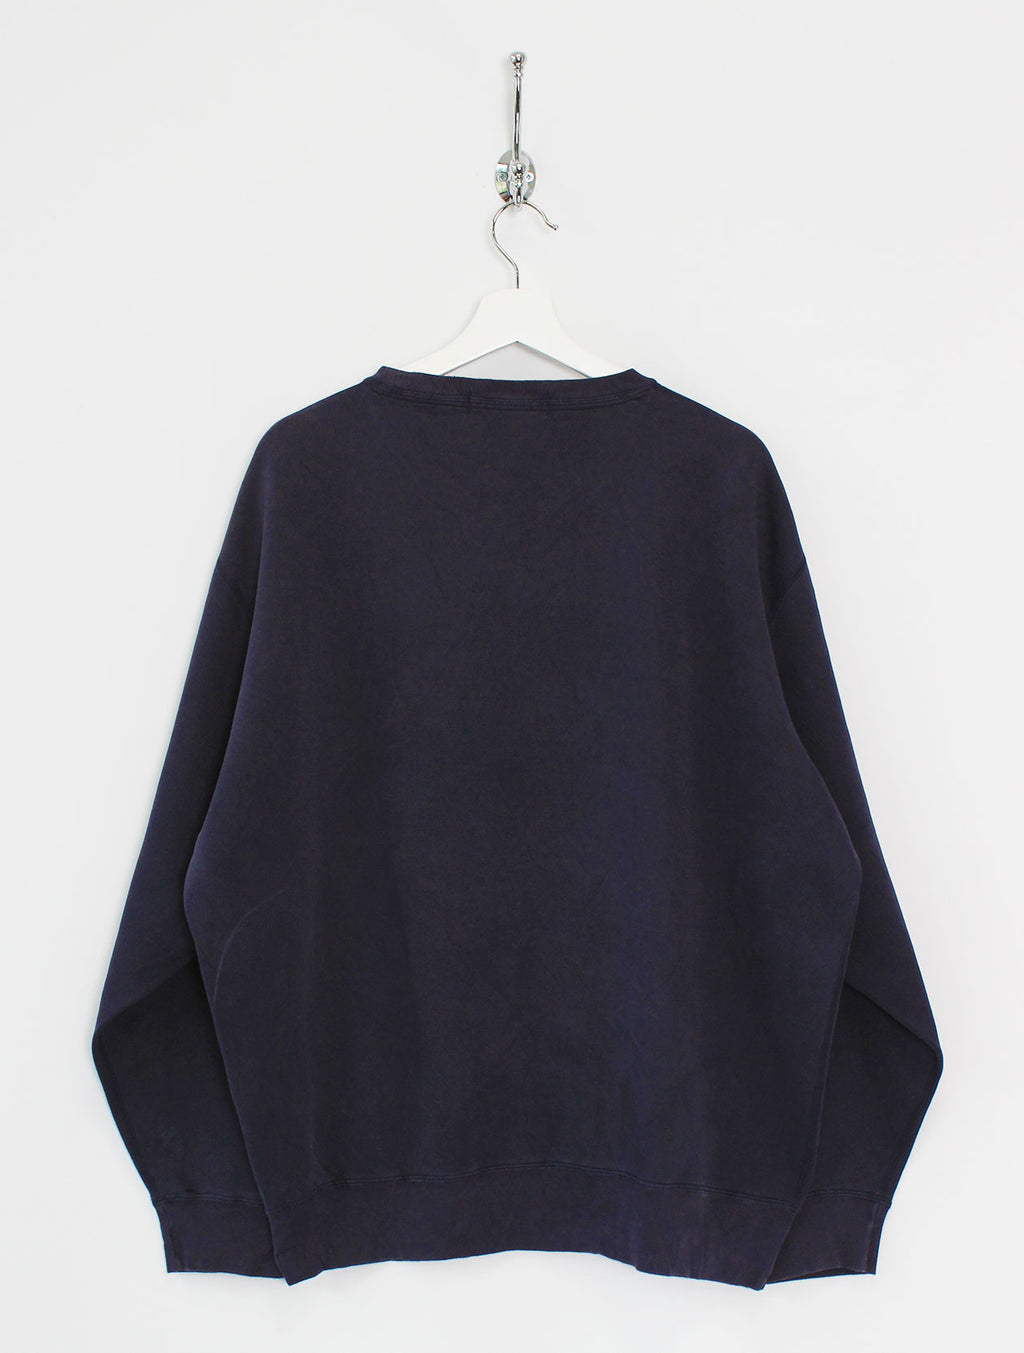 Ralph Lauren Sweatshirt (XL)